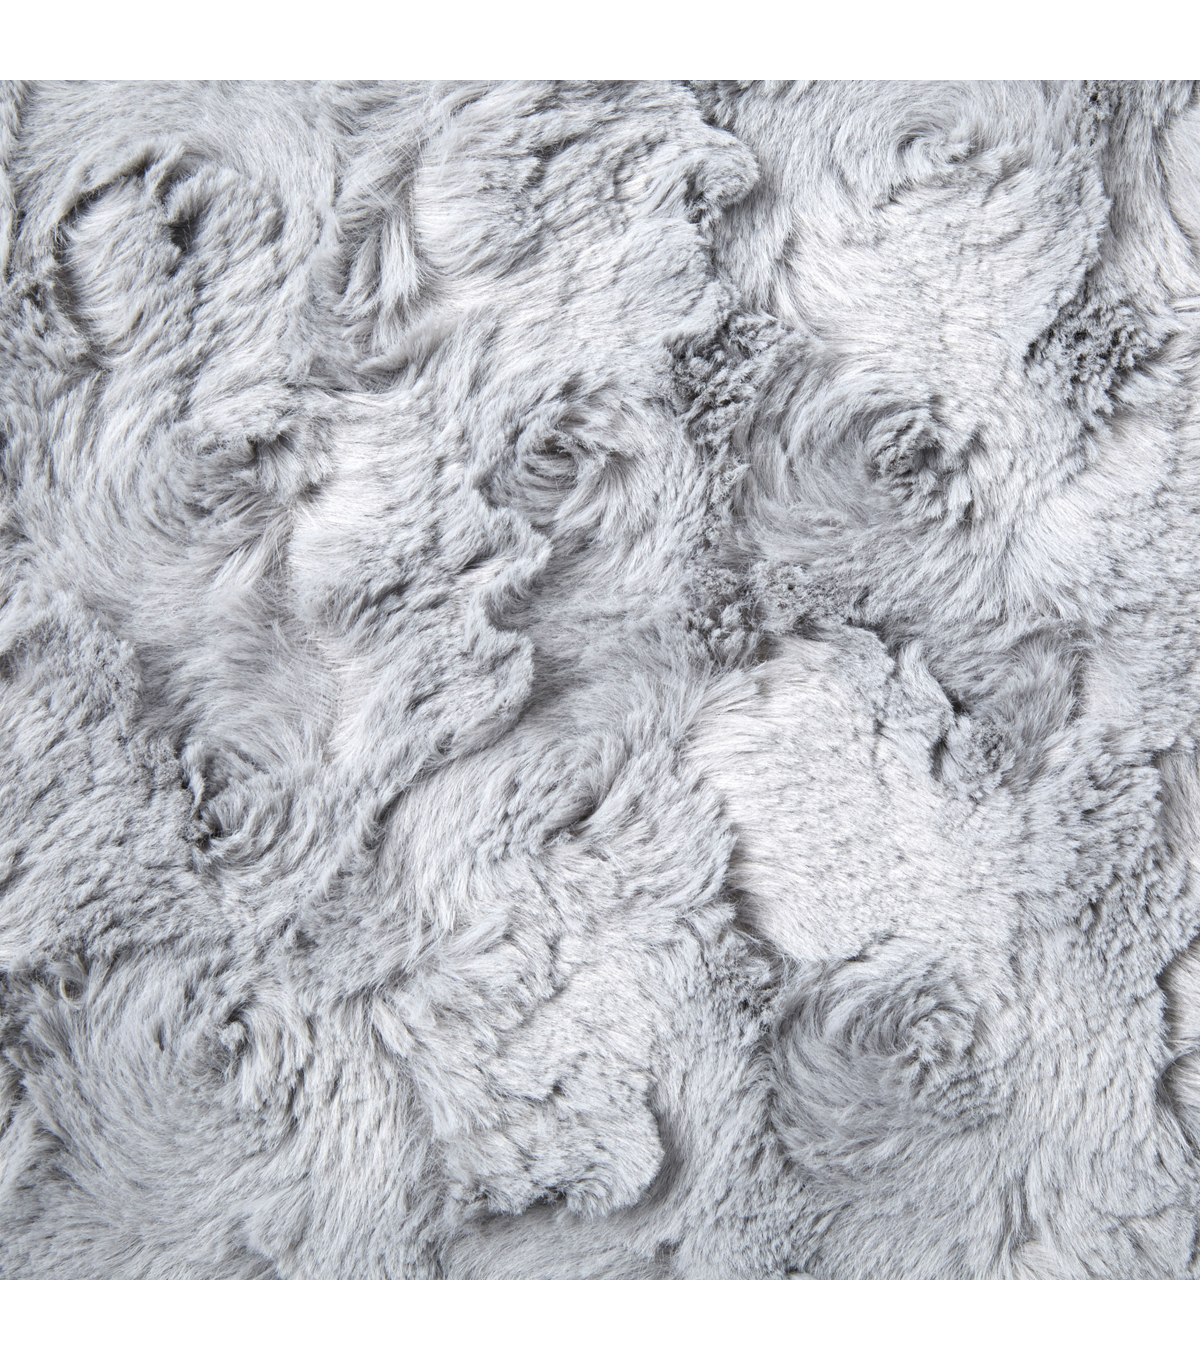 Faux Fur Fabric -Large Paloma Swirl